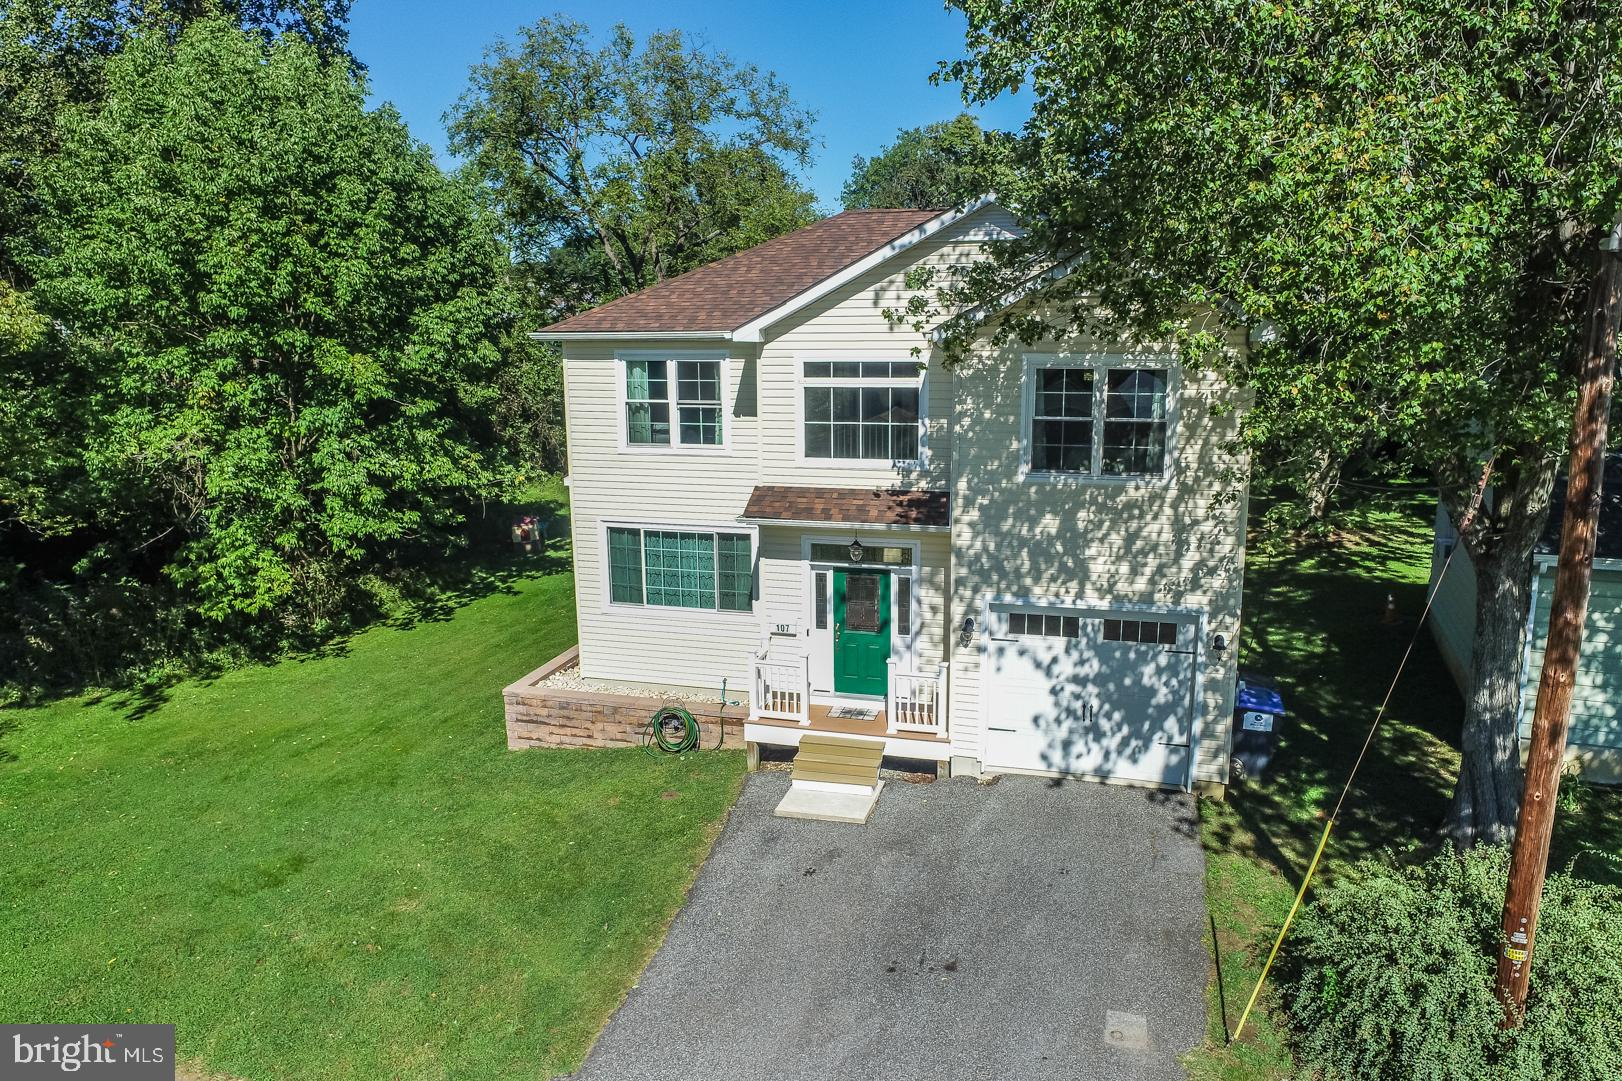 """Great location and great lot backing and adjacent to open land in Brookland Terrace.  3 beds, 2.5 baths, with a 1 car attached garage.  Hardwood floors and 9 ft ceilings on the first floor.  Living room has a large picture window and a gas fireplace flanked by two smaller transome style windows to allow for an abundance of natural light.  The kitchen is huge with 42"""" maple cabinets,  separate pantry,  gas cooking,  built in diswasher,  refrigerator, and microwave.  There is also bar counter seating and a separate dining area.  Access the deck through sliding  glass doors and enjoy a spacious seating area and room for a grill perfect for entertaining,  There is also a firepit on the side yard perfect for the upcoming Fall weather.  Upstairs are 3 spacious bedrooms with excellent closet space.  The primary bedroom has a large walk-in closet  as well as a 3 peice bathroom with private access.  All energy efficient windows and noise reducing insulation between floors and bathrooms.  Brand new carpet installed on the entire second floor 1 week ago.  New high efficiency HVAC systems in 2020.  Washer & dishwasher were also replaced in 2020.  Gas water heater in 2019.   Full unfinished basment with poured concrete foundation and proper egress installed perfect for finishing to add additional living space.  All appliances included.  This house is turn key and in move-in condition!"""